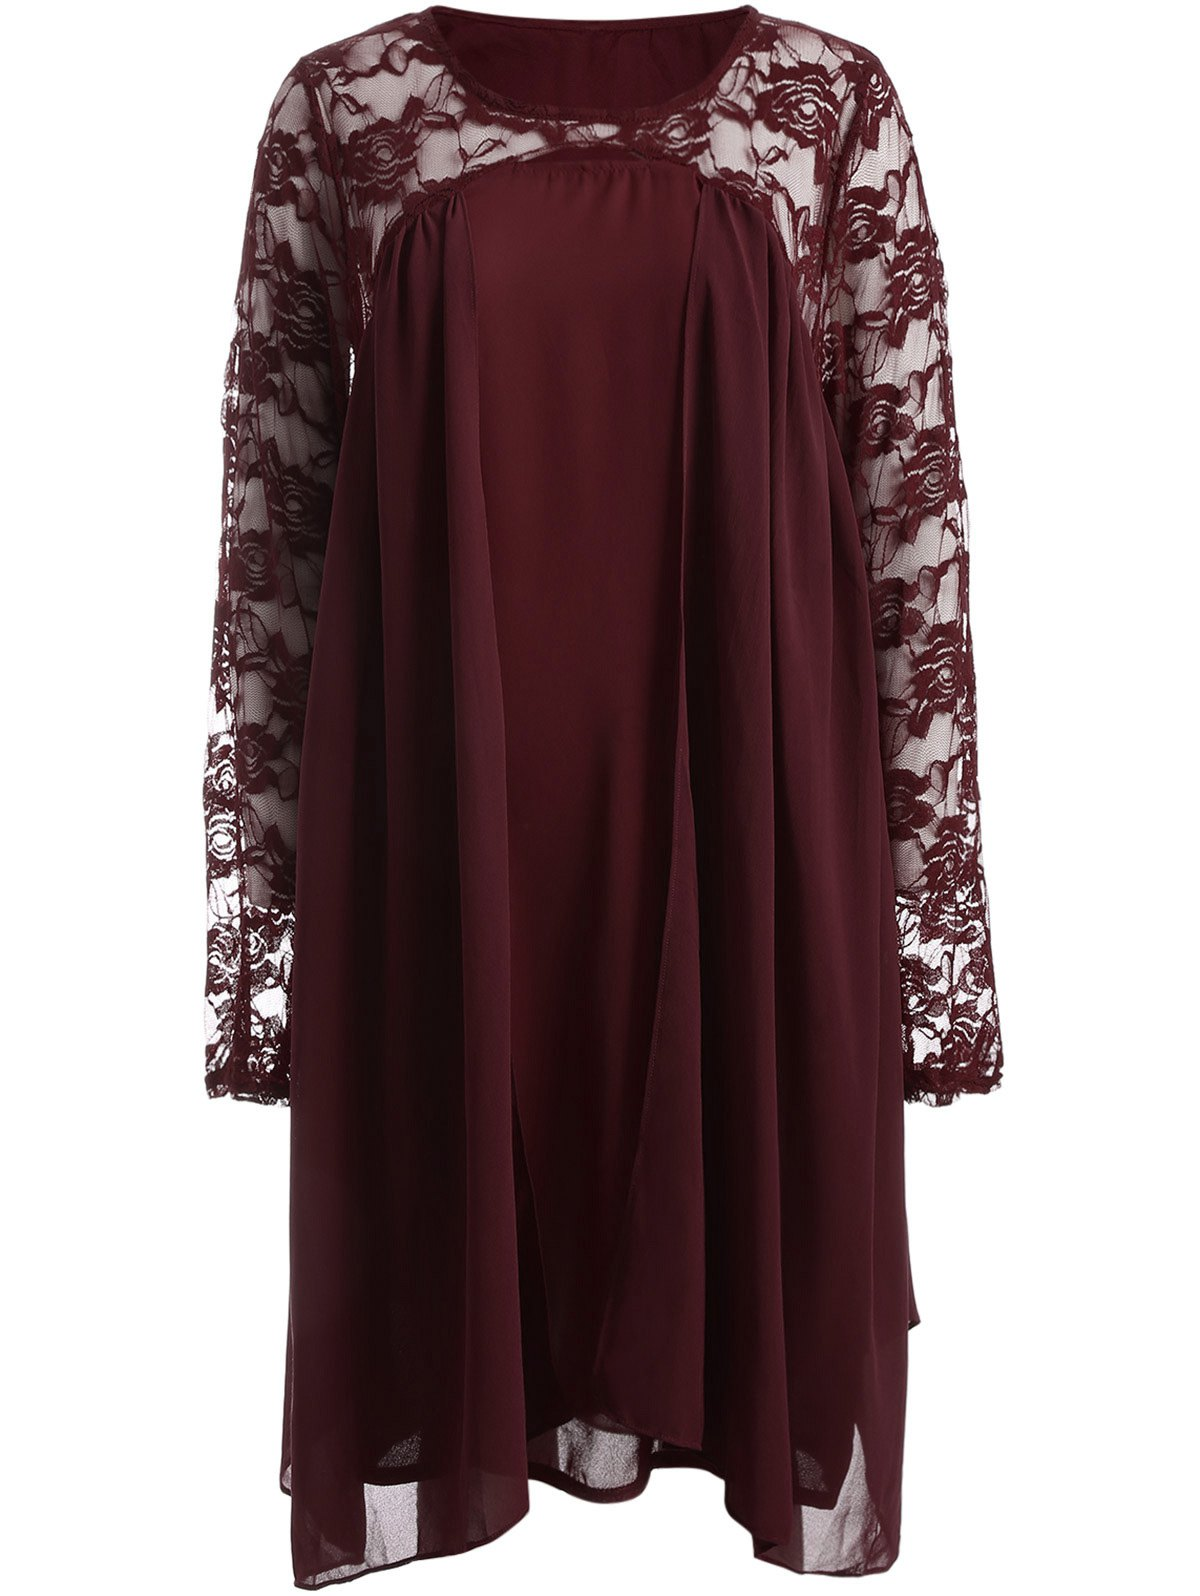 Plus Size Long Sleeve Lace Insert Shift Dress - RED 3XL